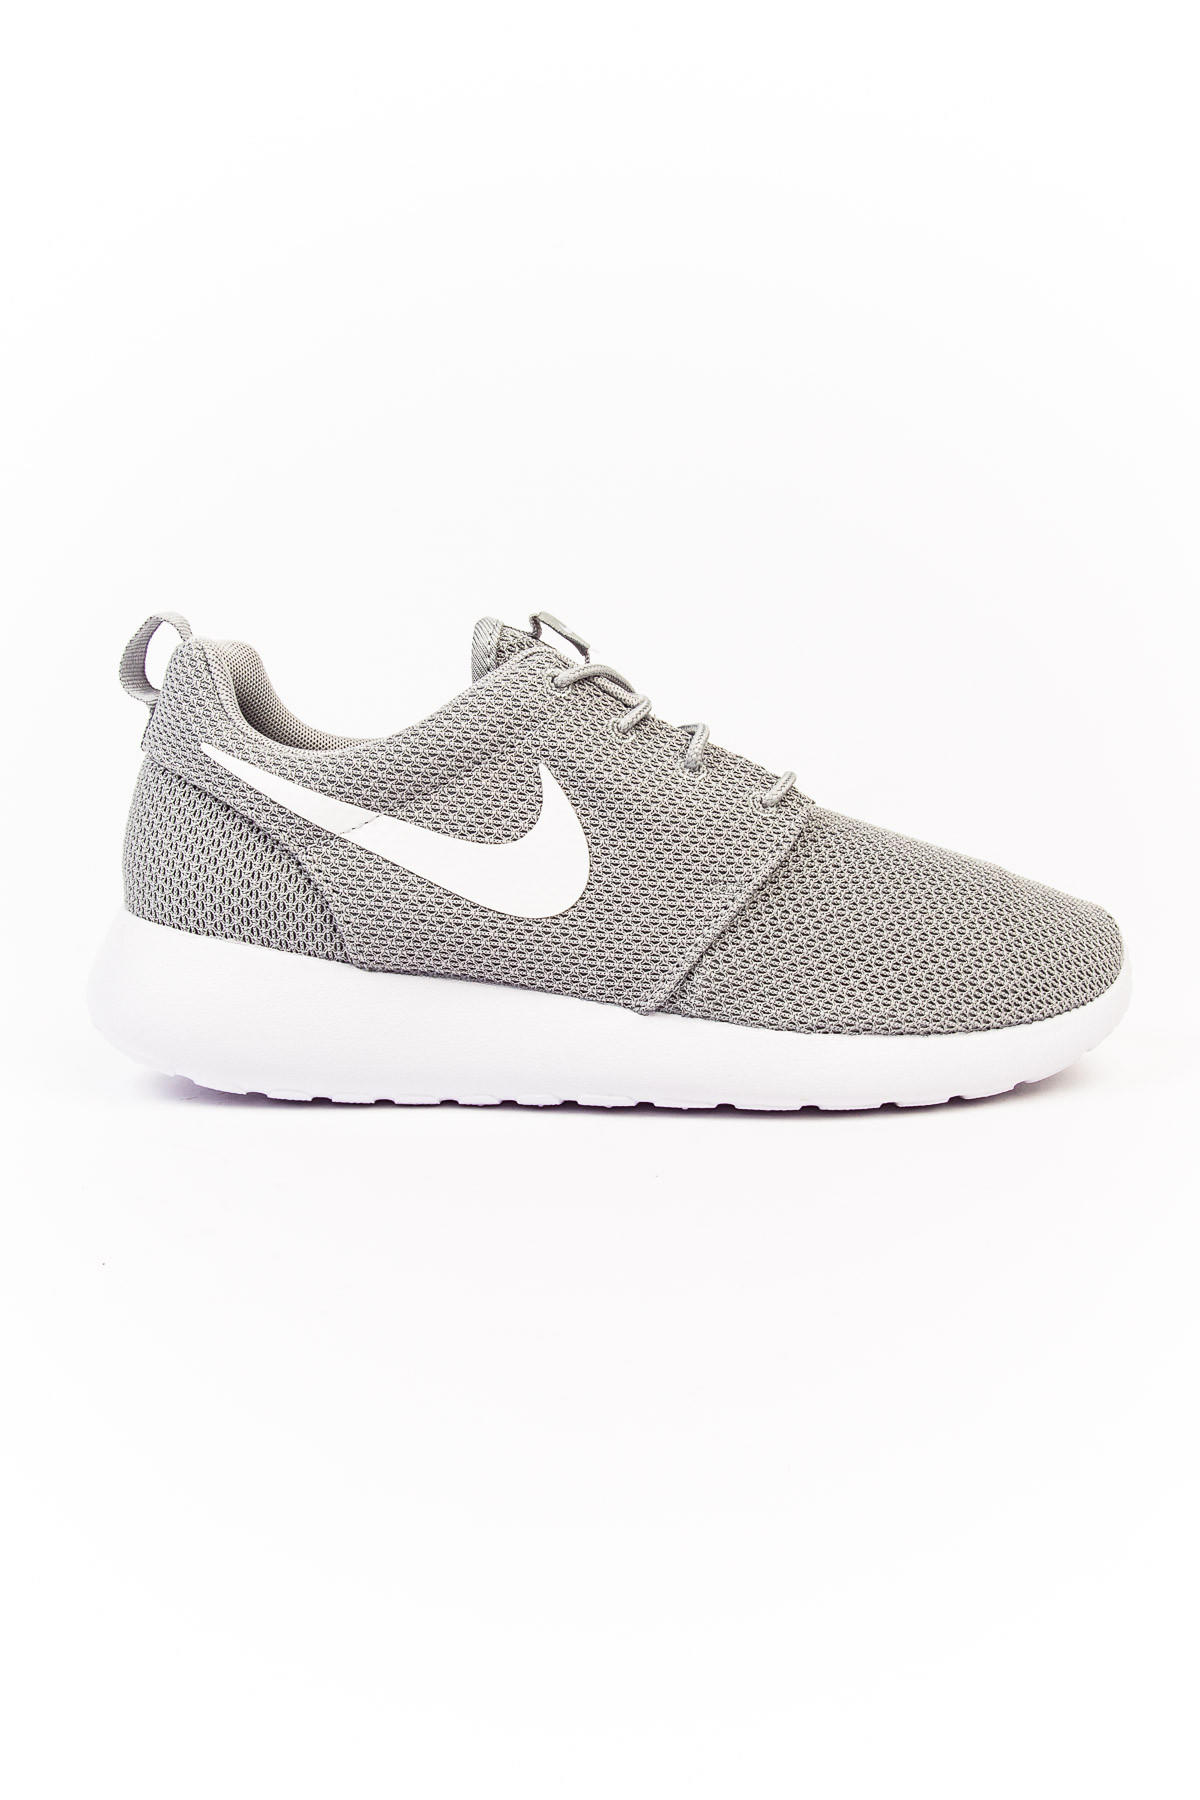 Nike Roshe One Wolf Grey White Sneaker from Probus  18690d1094f1